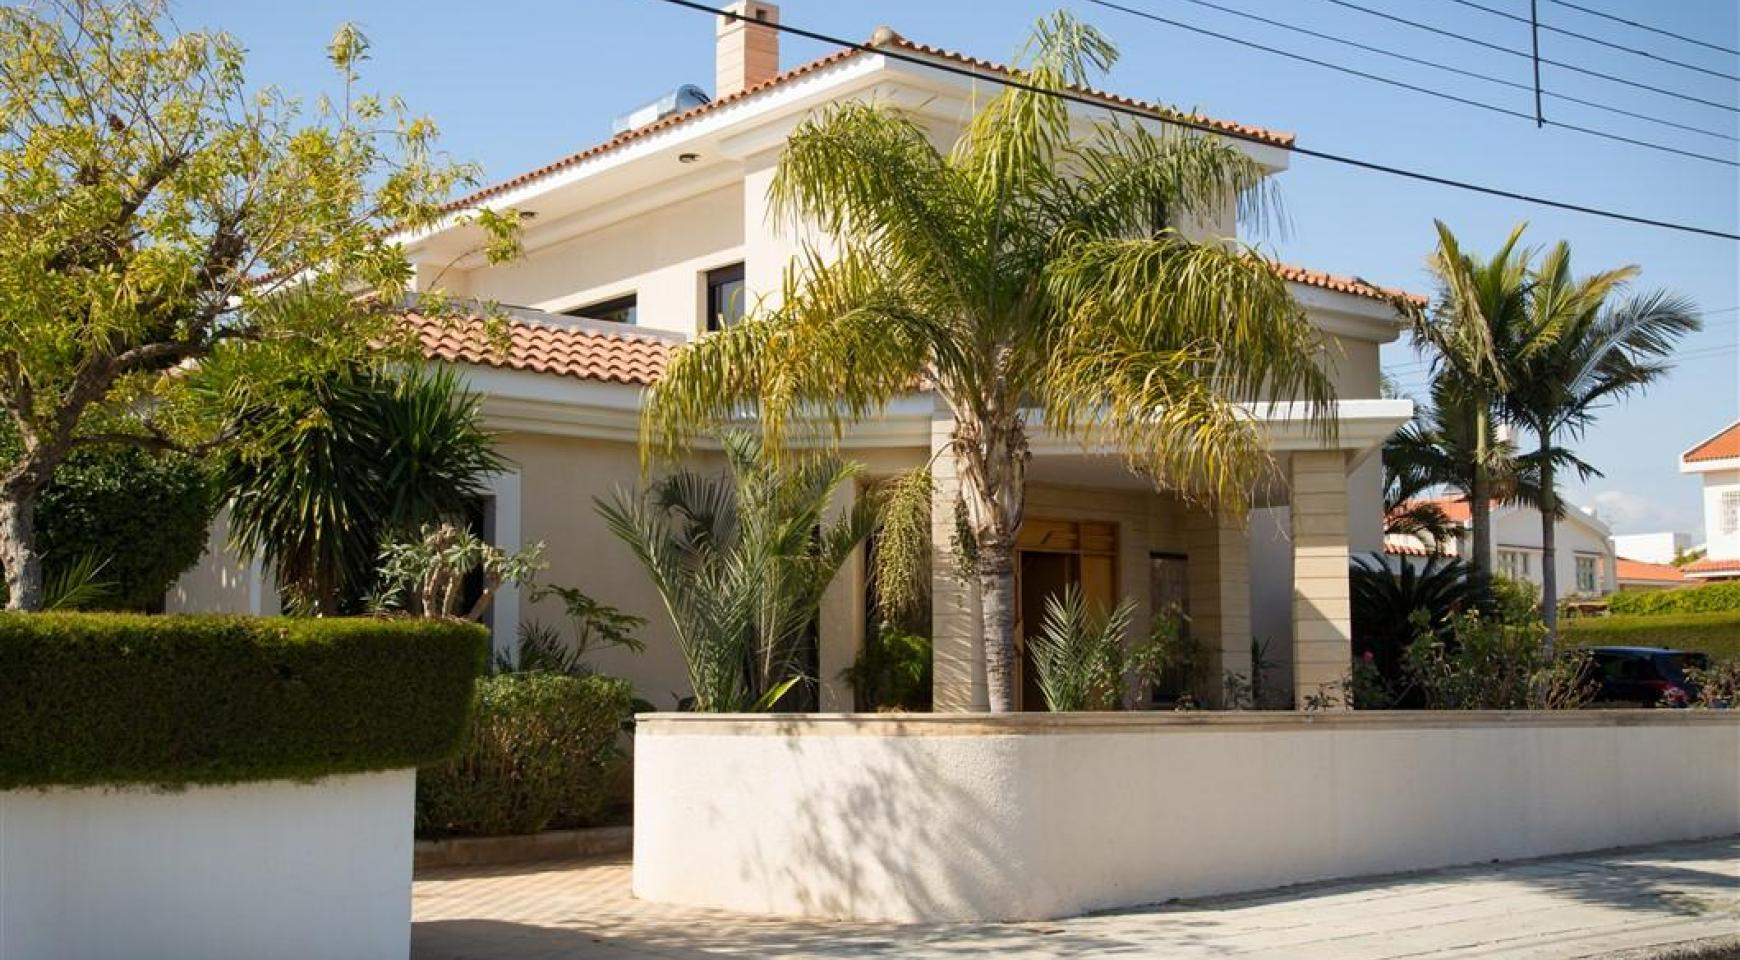 4 Bedroom Villa in Germasogeia Area - 1